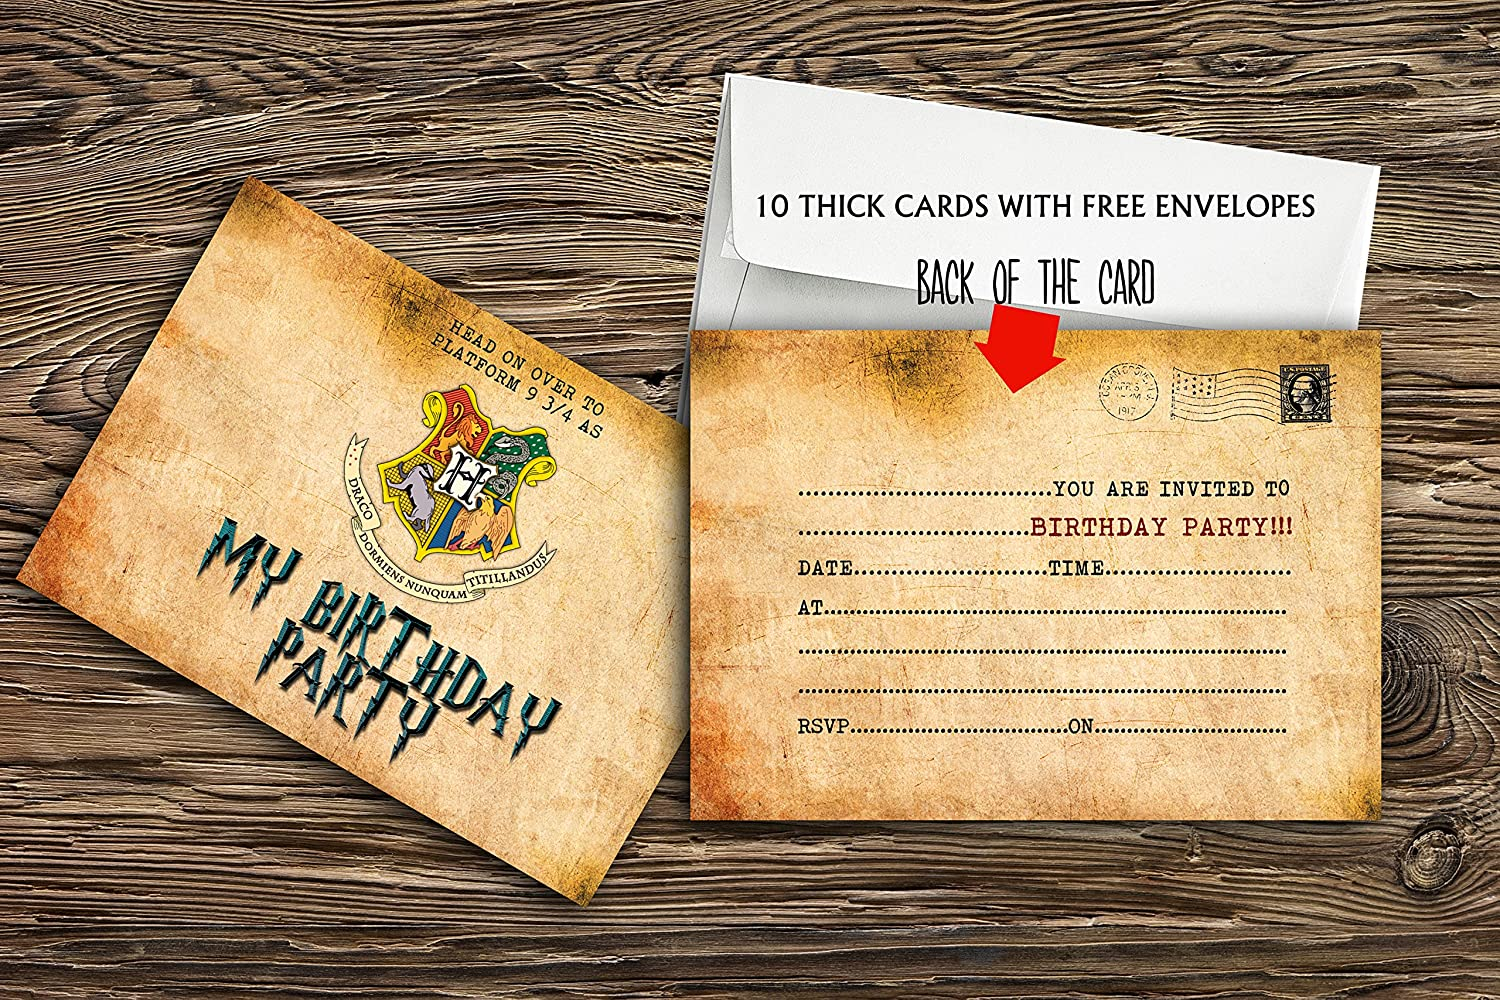 10 x Harry Potter birthday Party Invitations With 10 FREE Envelopes design buddies